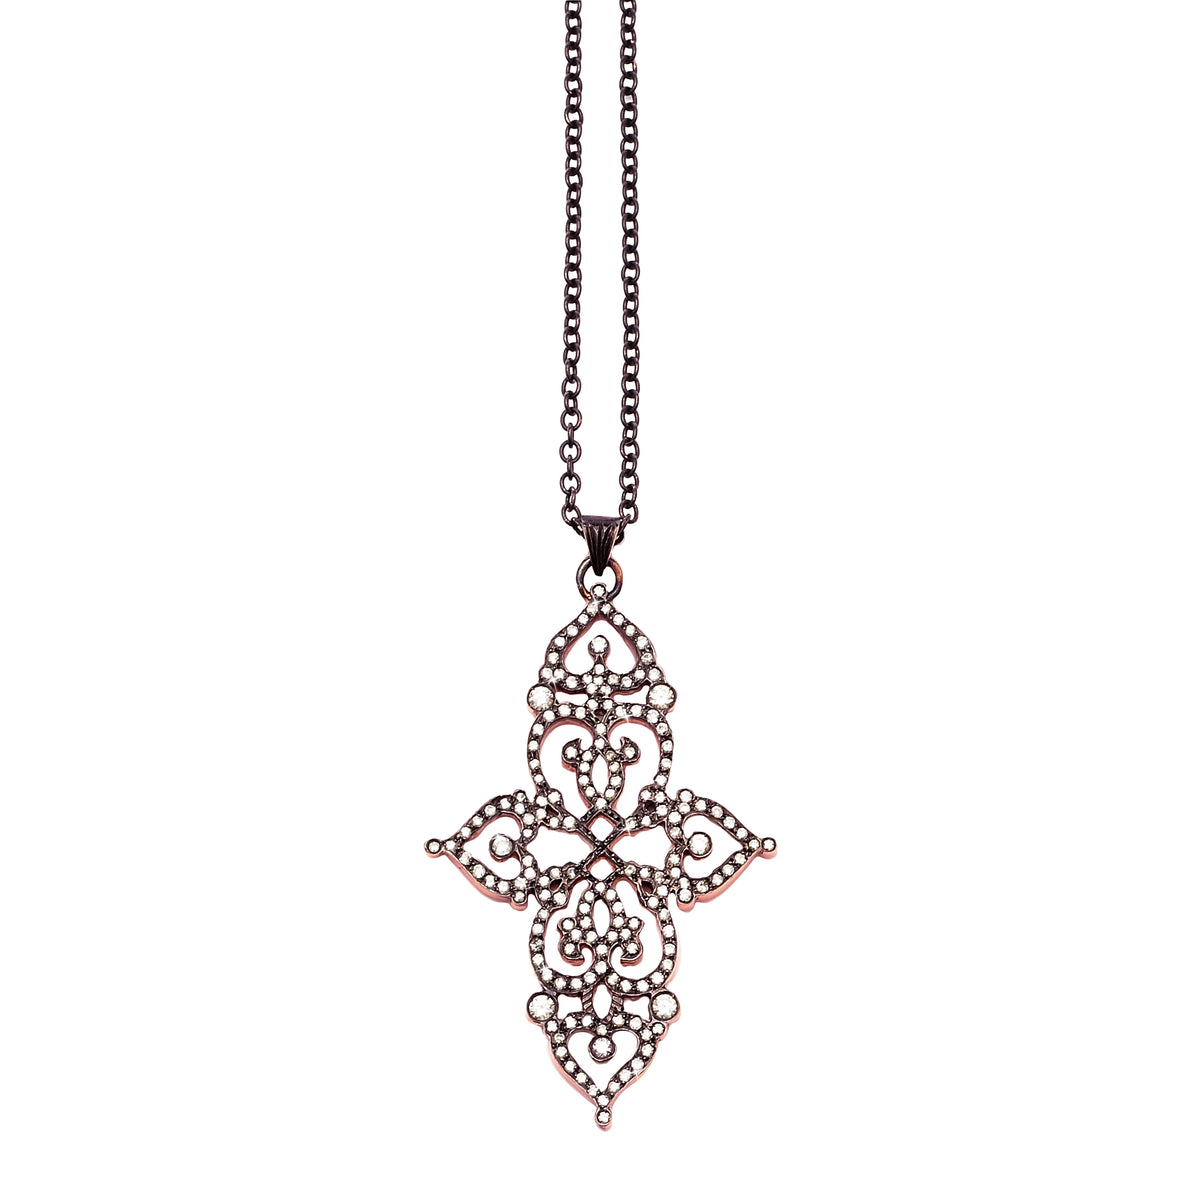 Pendant 'cross' with 18k rose gold chain